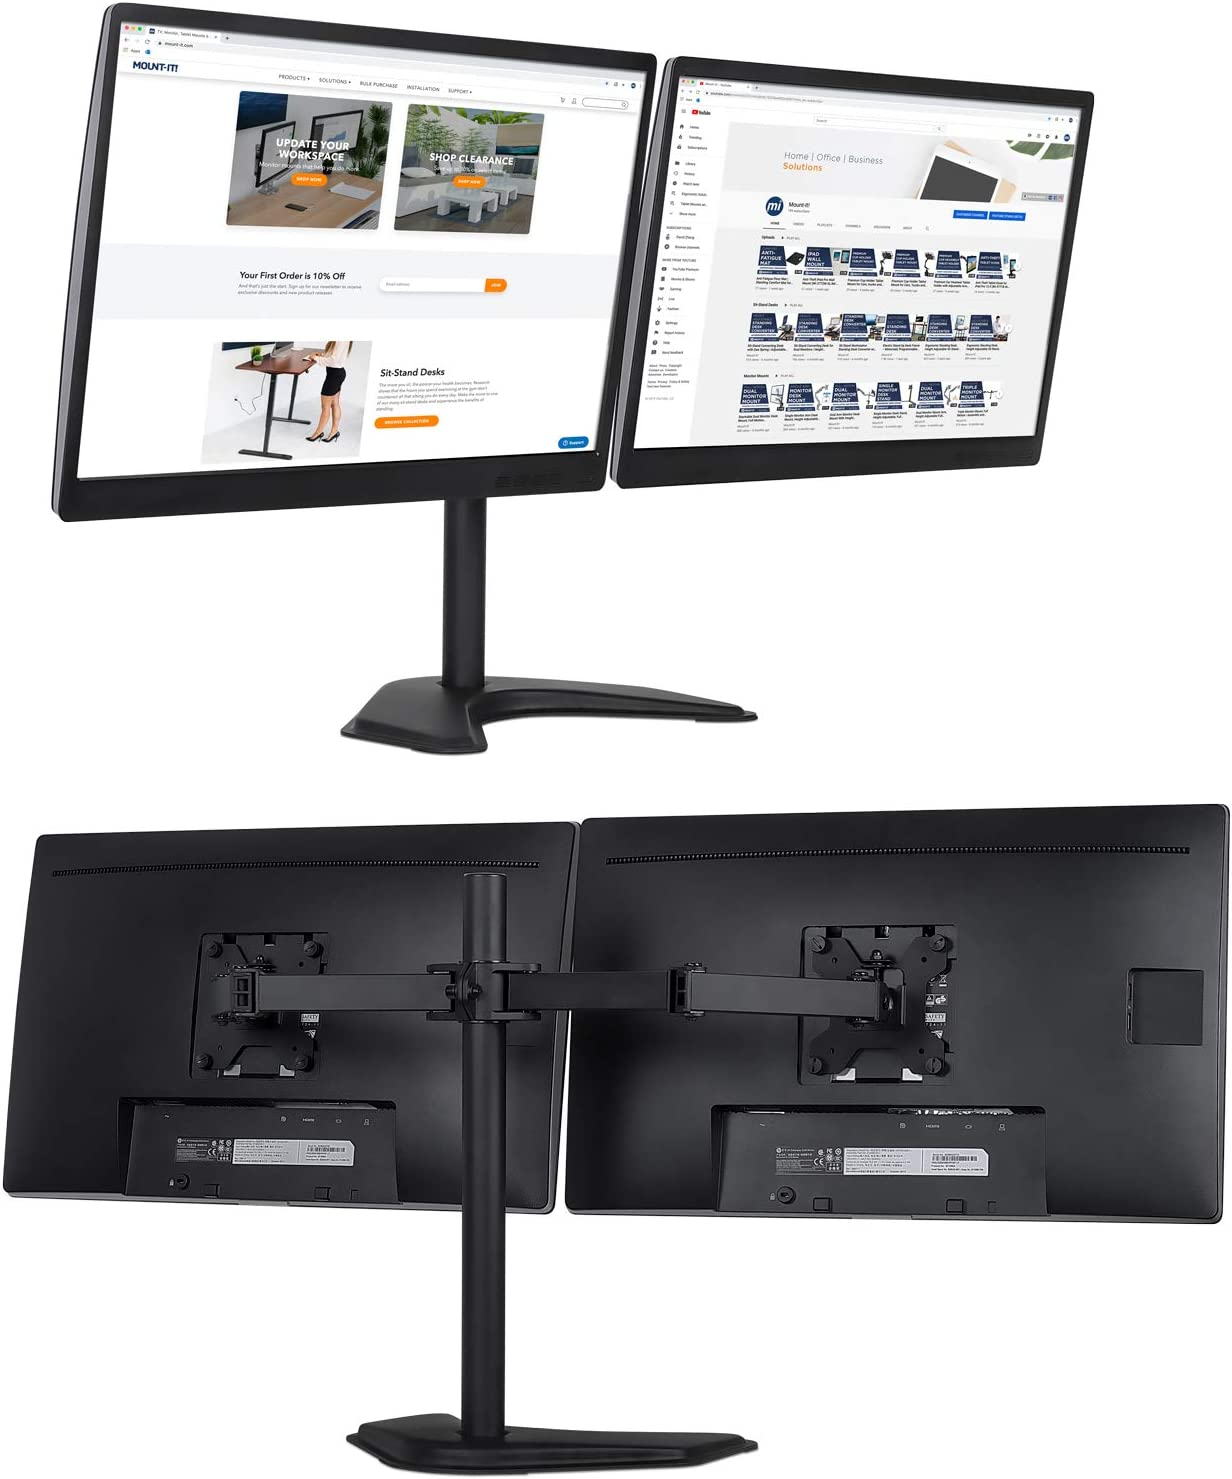 Free Standing and Grommet Bases 2 Monitor Mount Fits 19 20 21.5 24 27 29 32 Inch Computer Screens Mount-It Dual Monitor Stand VESA Compatible Two Heavy Duty Tilt Swivel Height Adjustable Arms